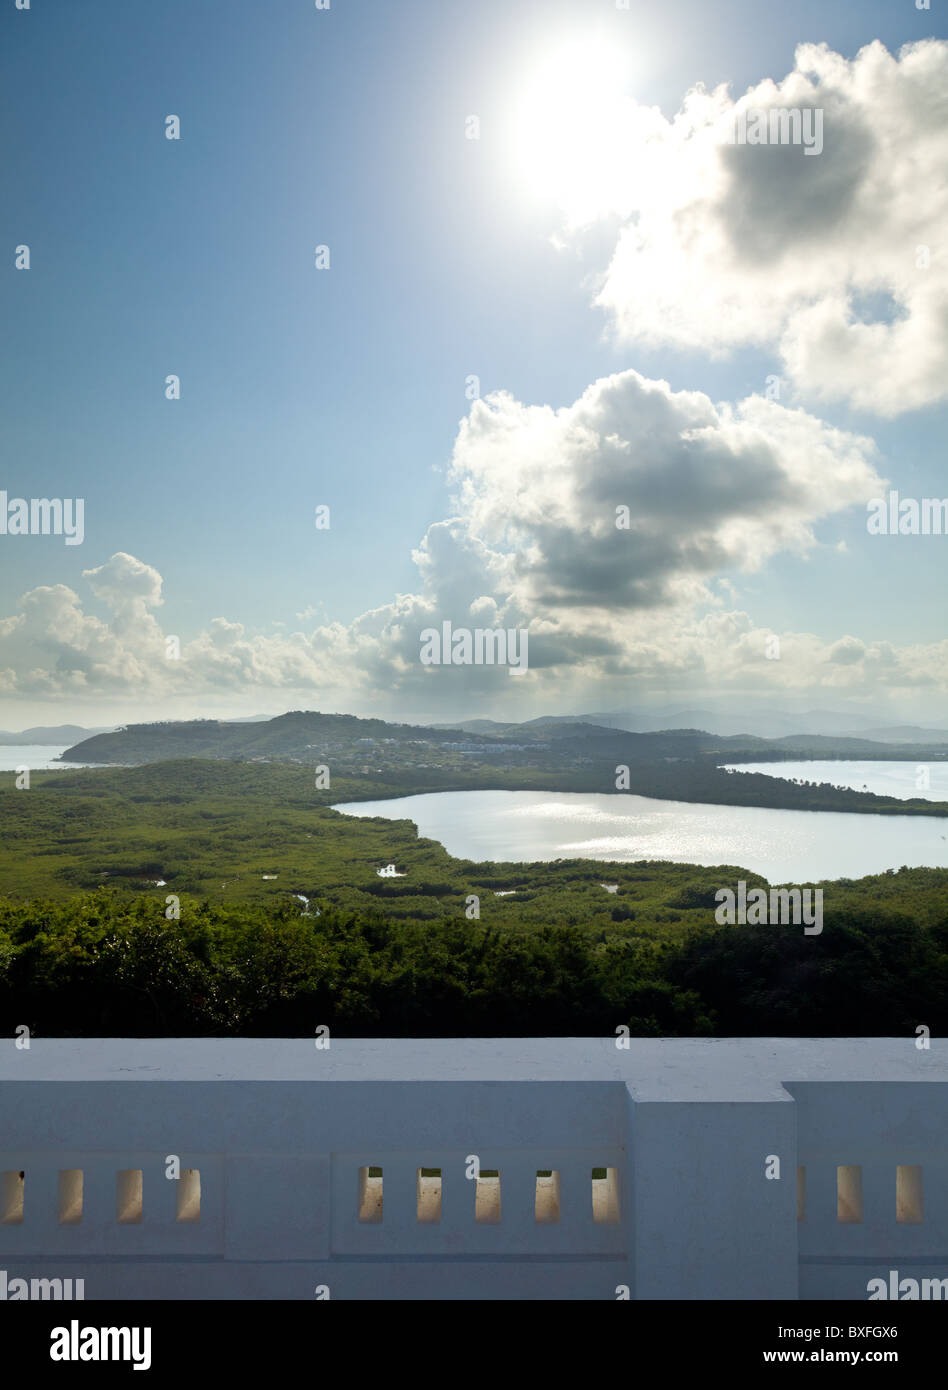 El Yunque National Forest, Puerto Rico - view across a lagoon towards the tropical rainforest - Stock Image